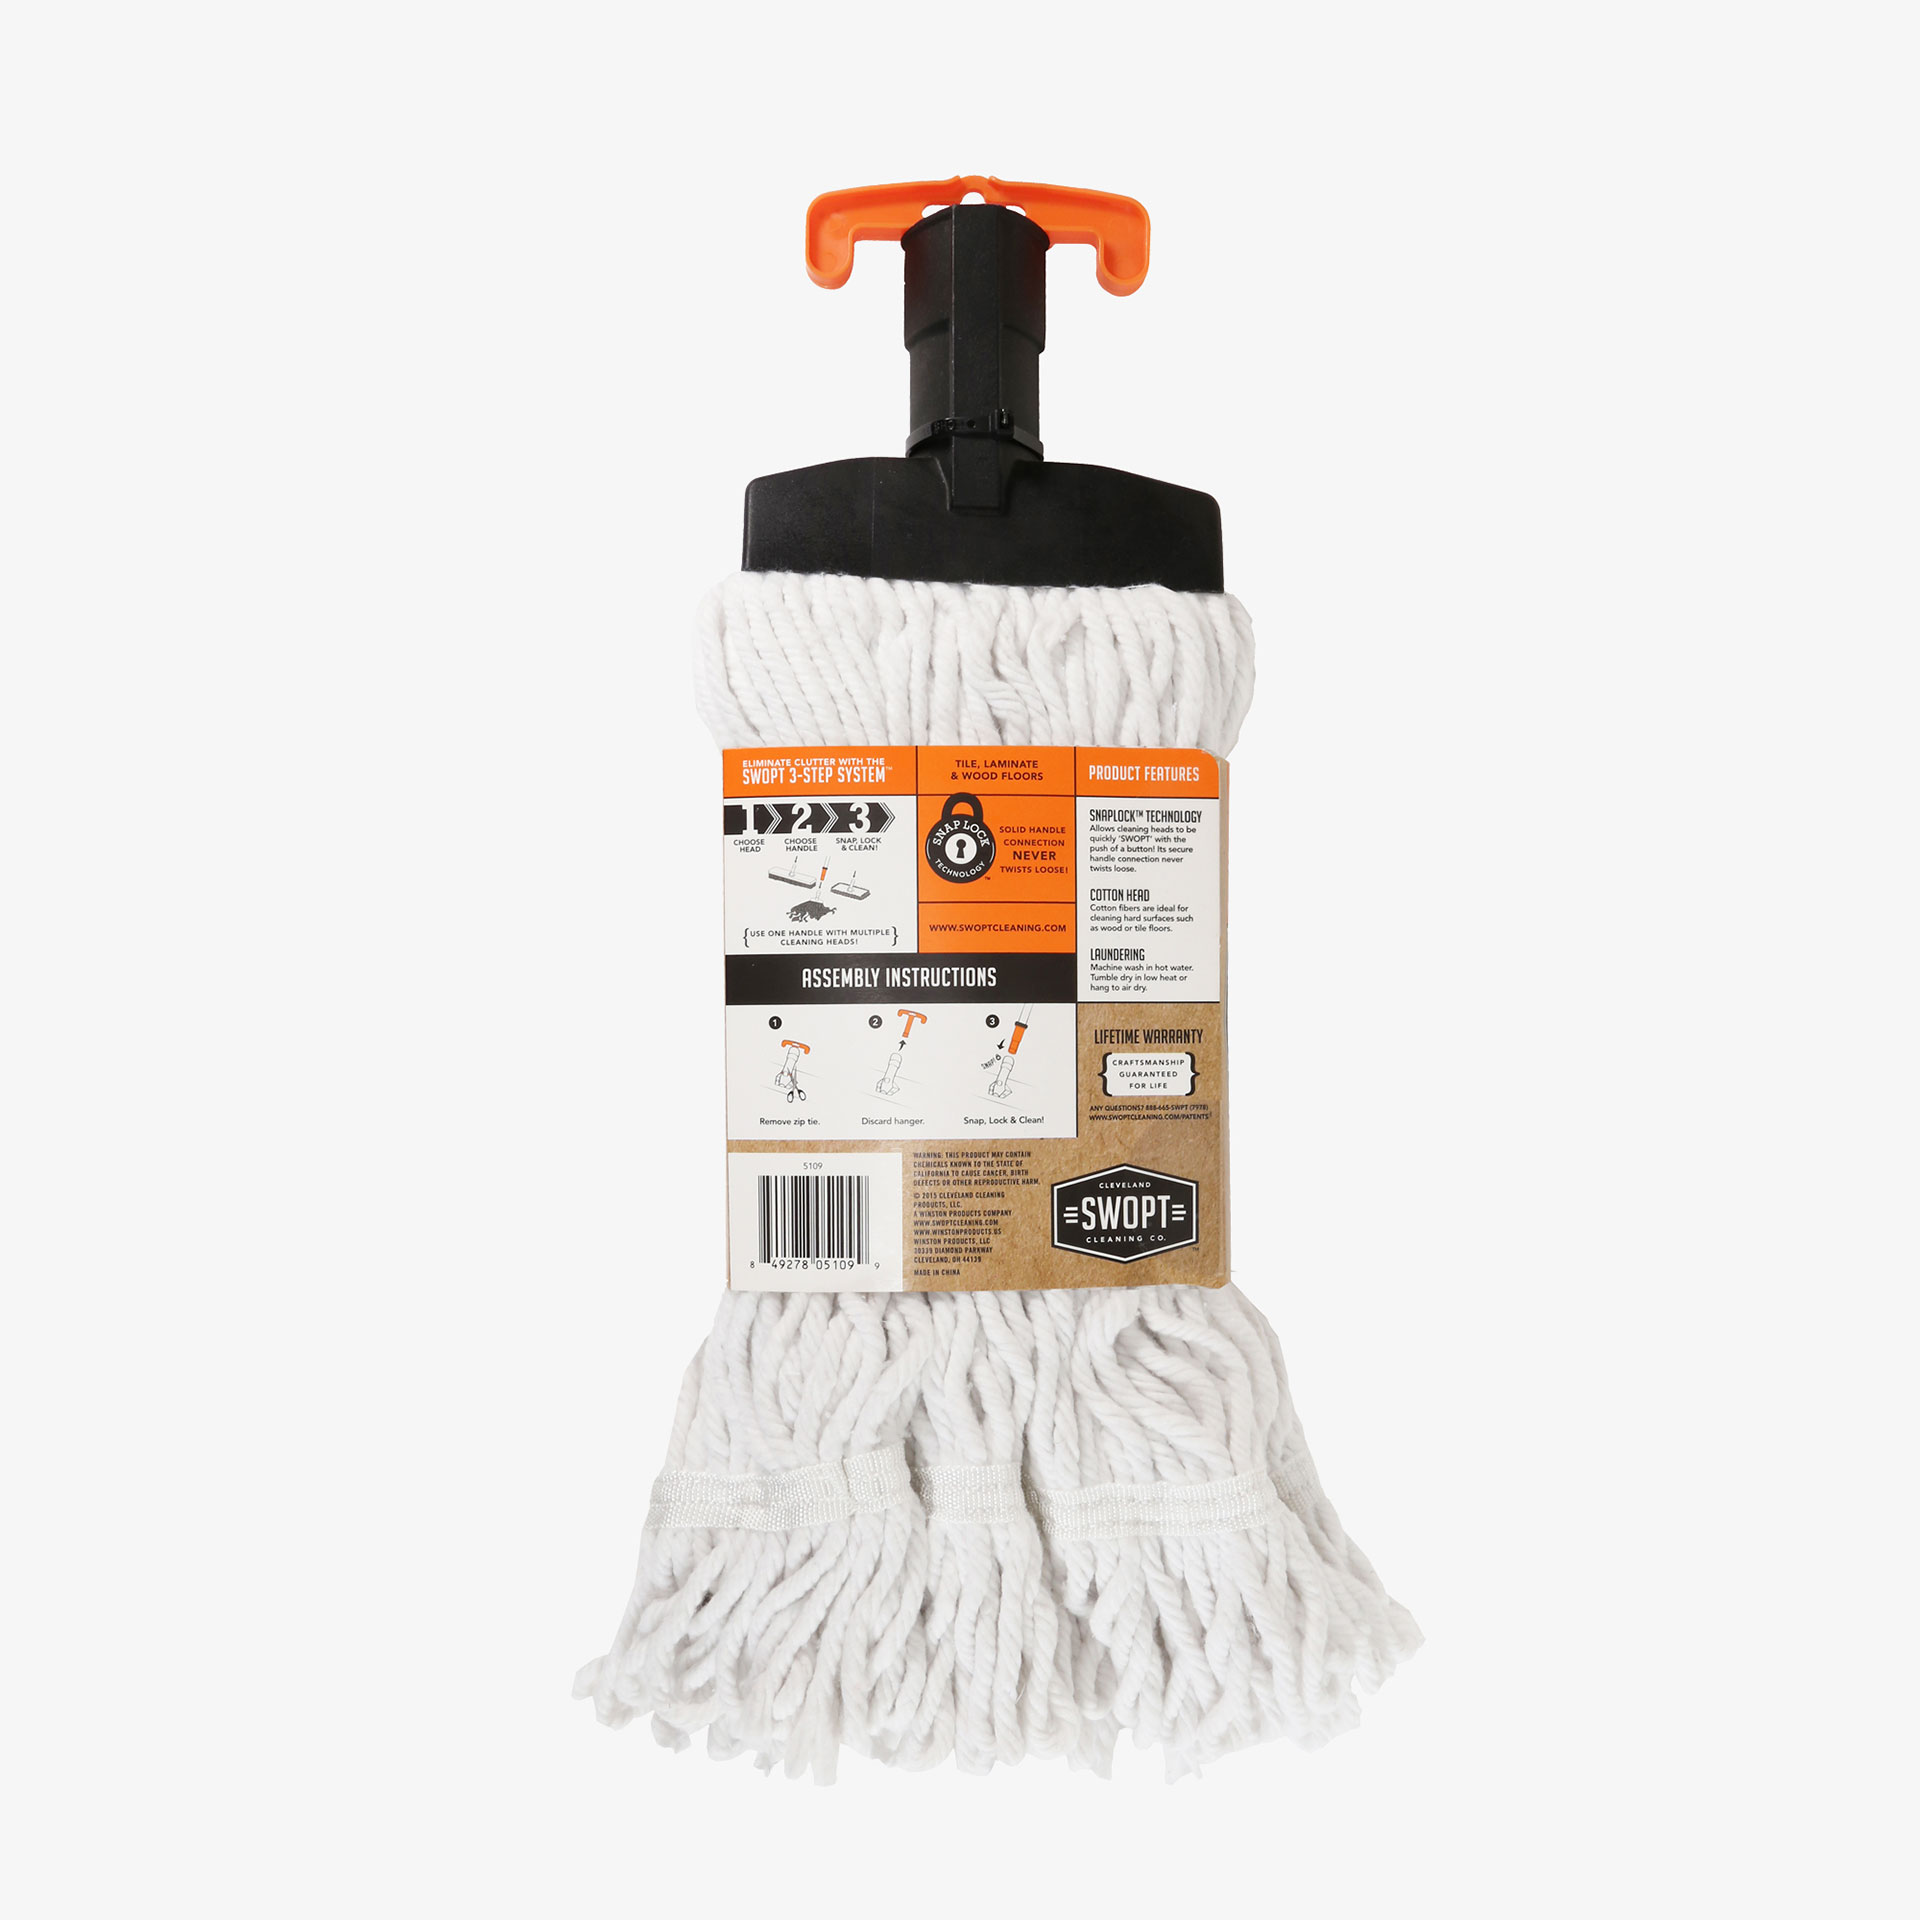 Cotton Mop Swopt Cleaning Co